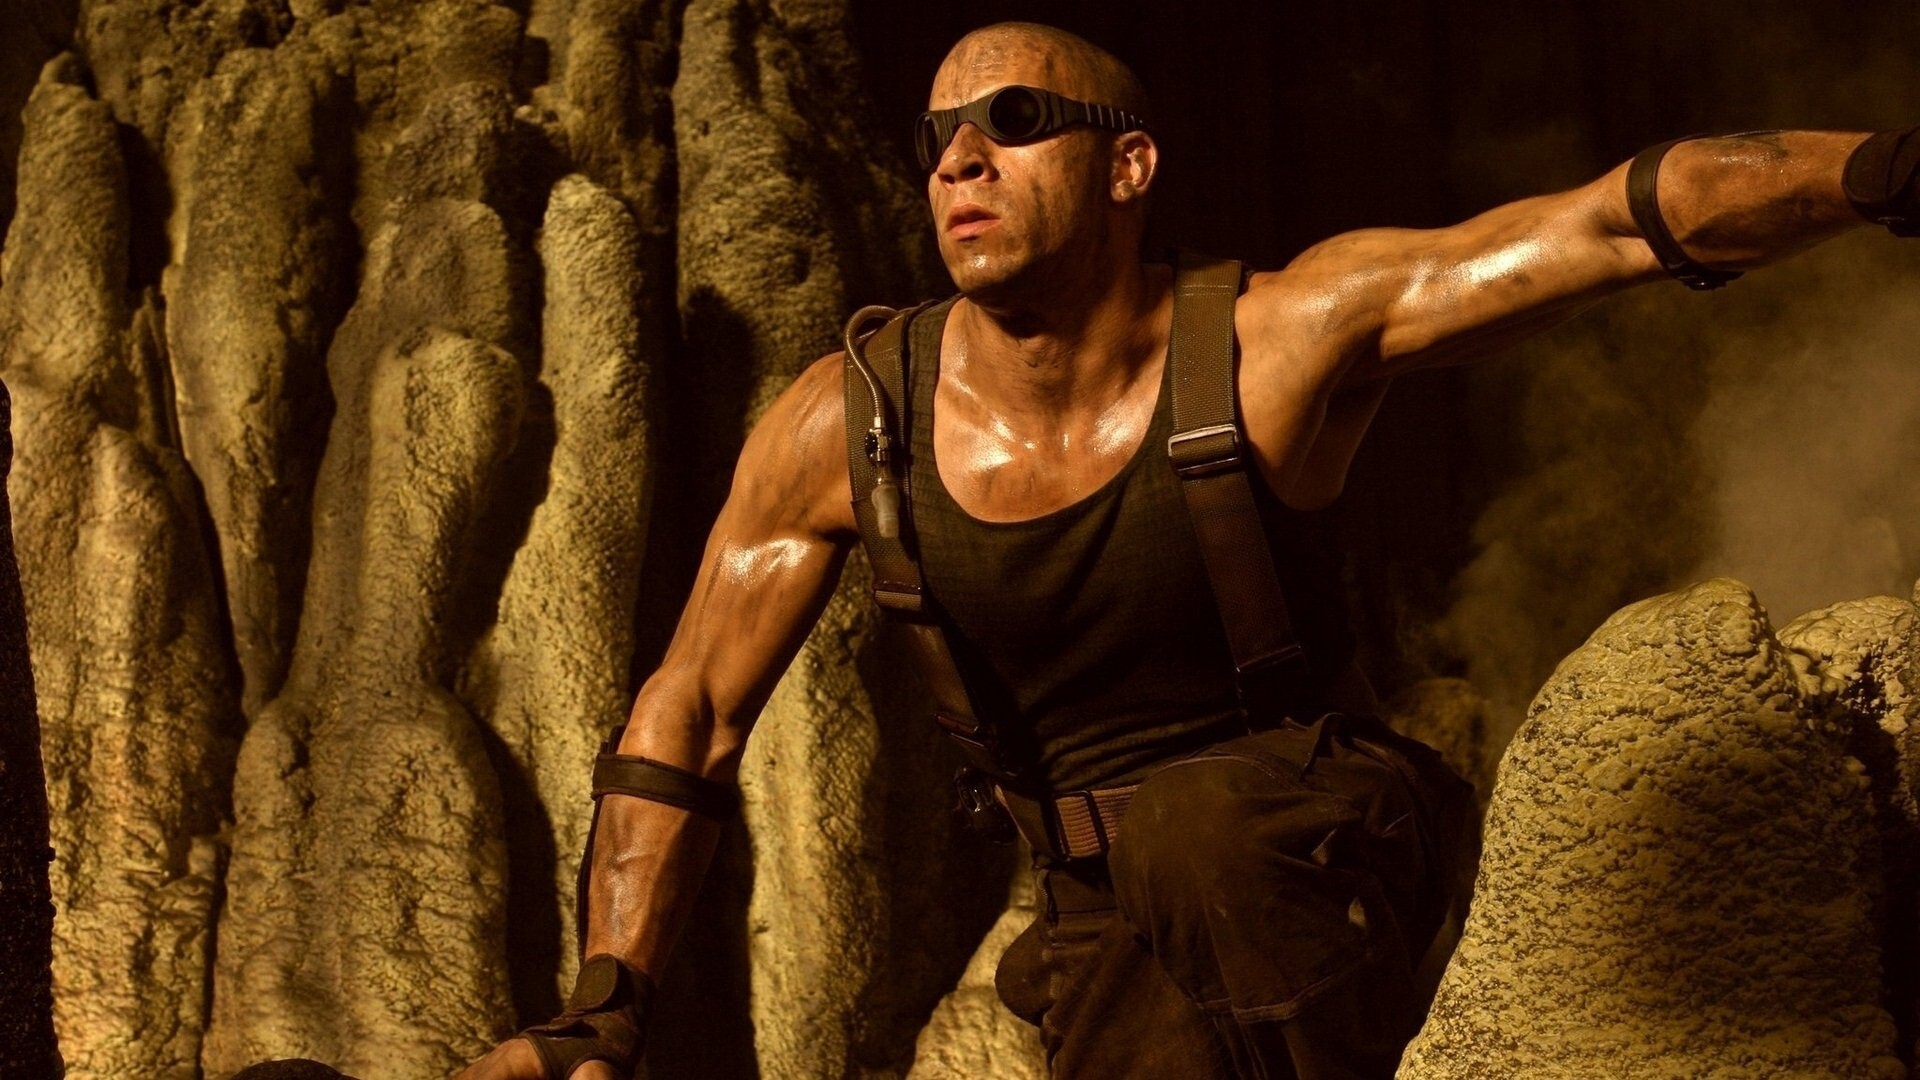 vin diesel the chronicles of riddick movie wallpaper | hd wallpapers